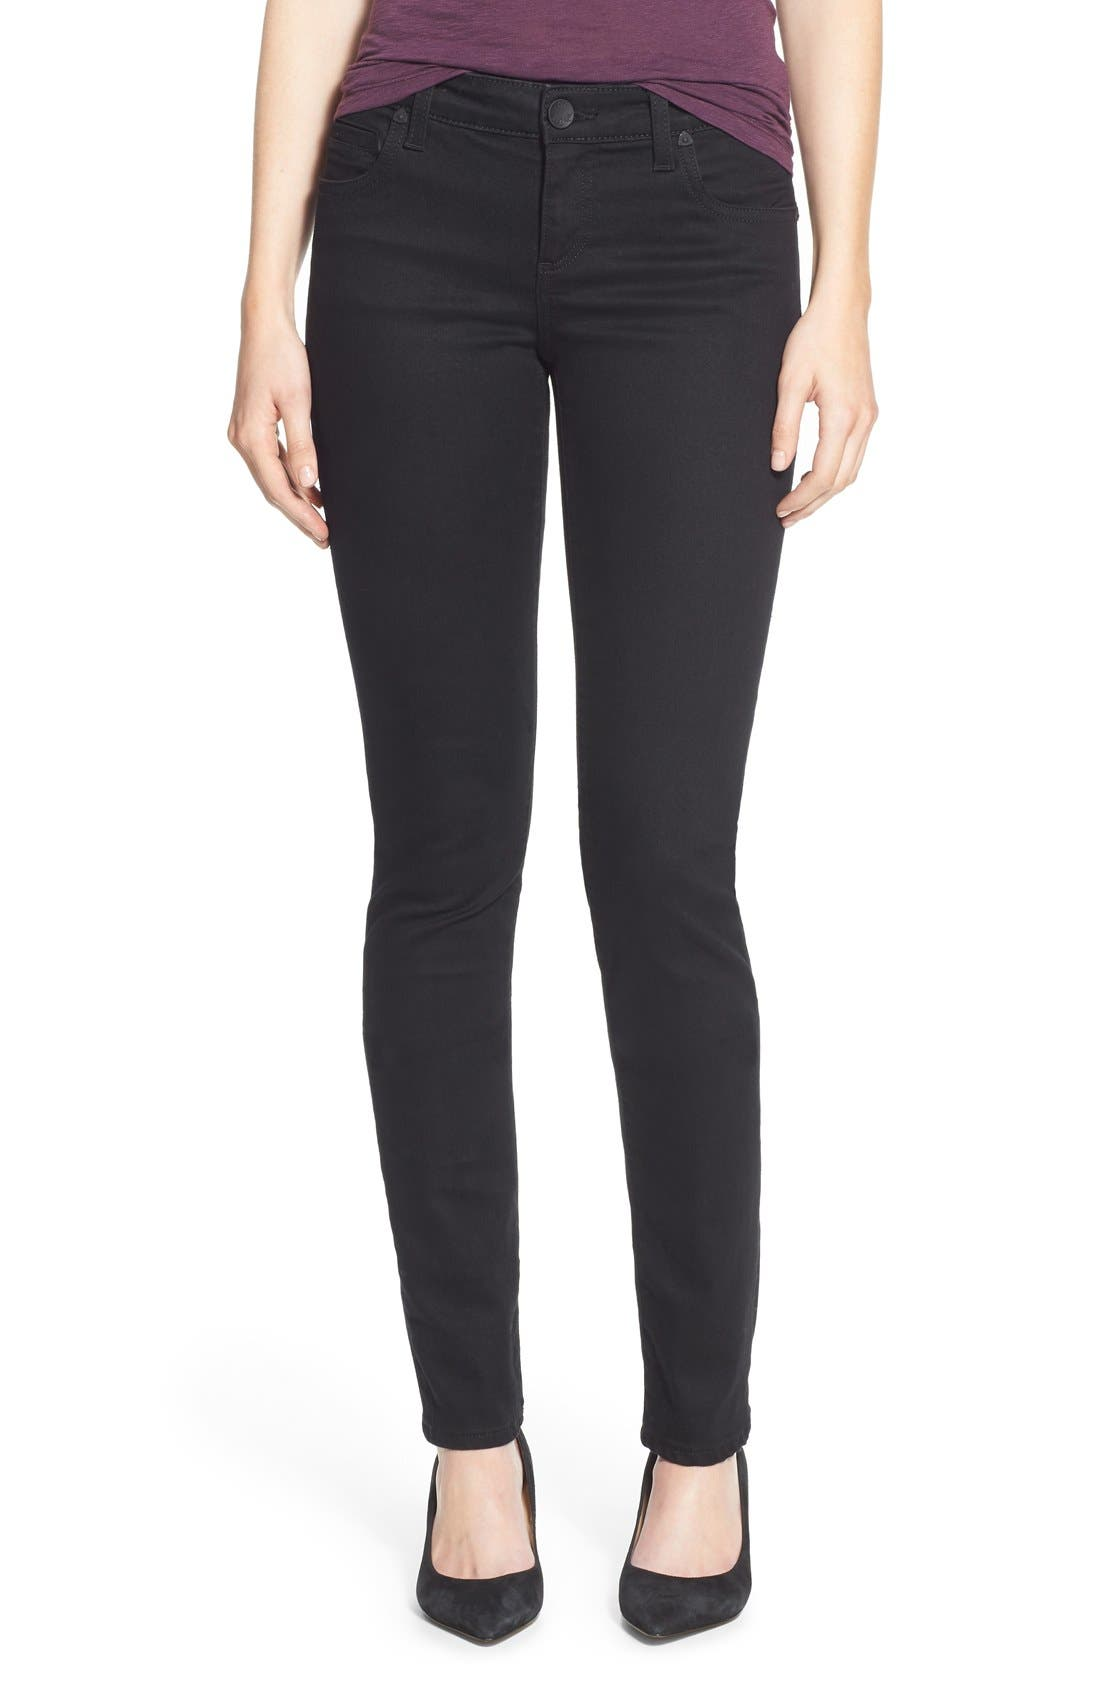 Alternate Image 1 Selected - KUT from the Kloth 'Diana' Stretch Skinny Jeans (Regular & Petite)